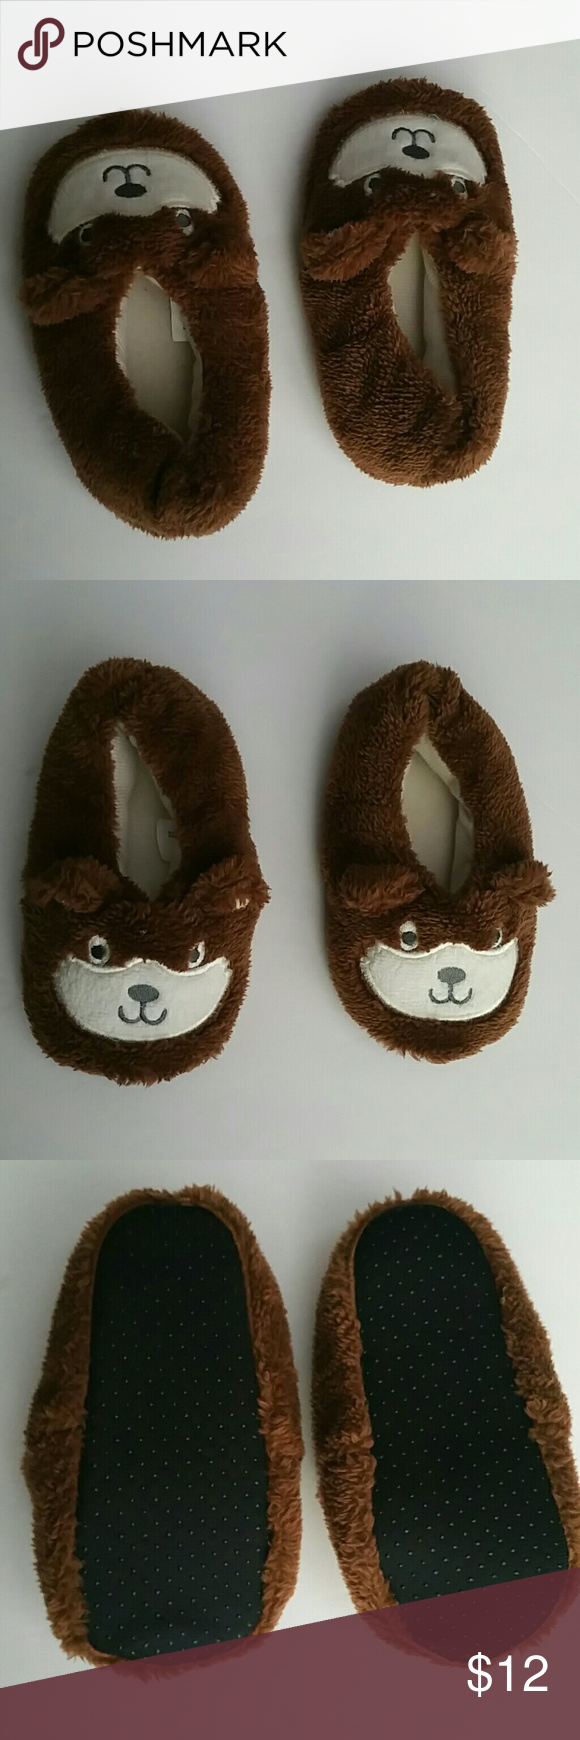 Toddler house shoes Customer support and Delivery